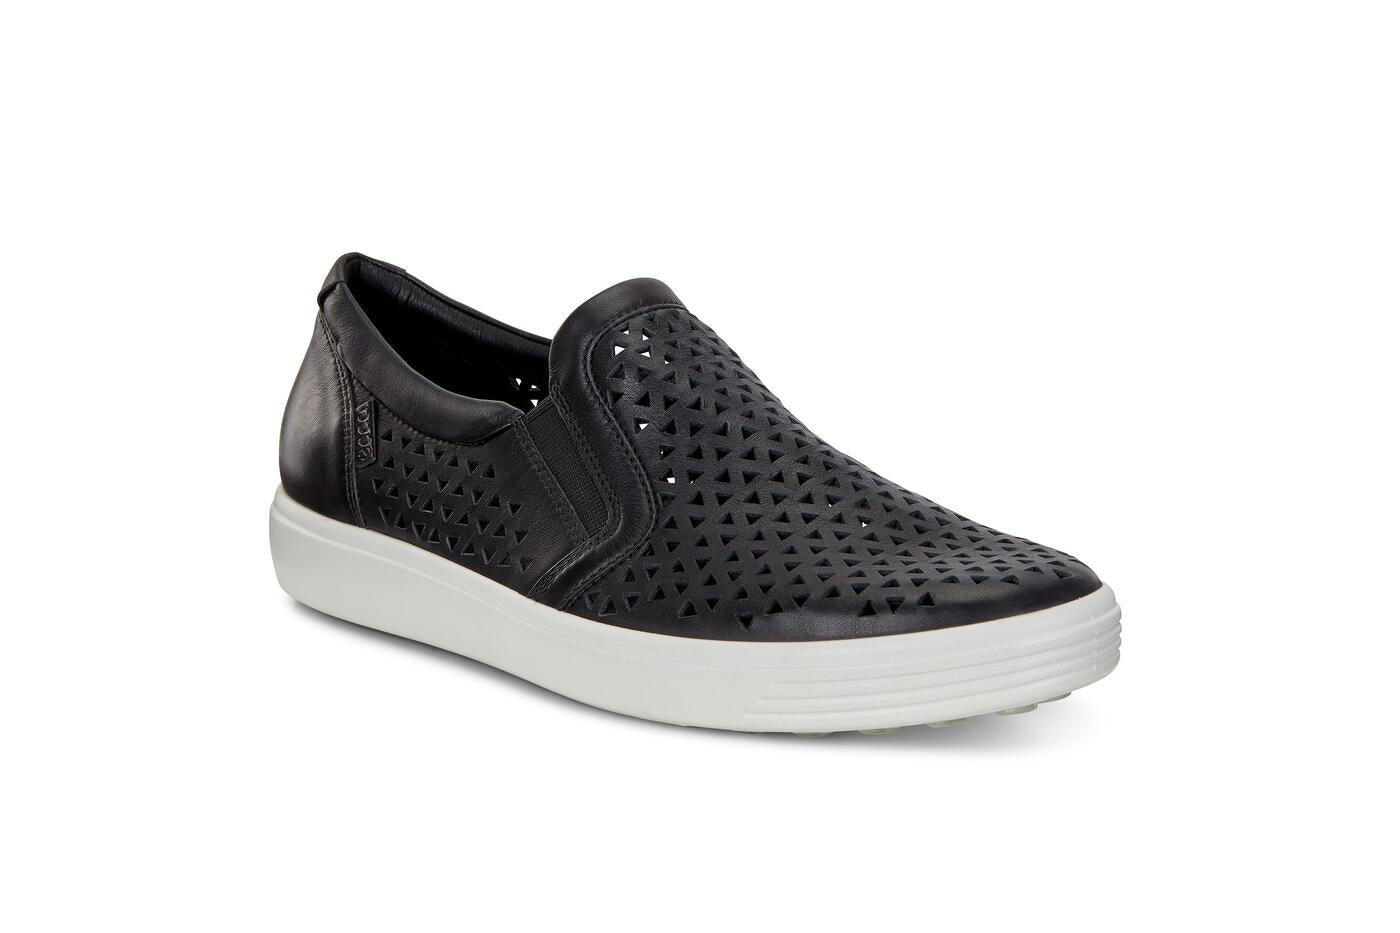 WOMEN'S SOFT 7 W SLIP-ON - KARAVEL SHOES